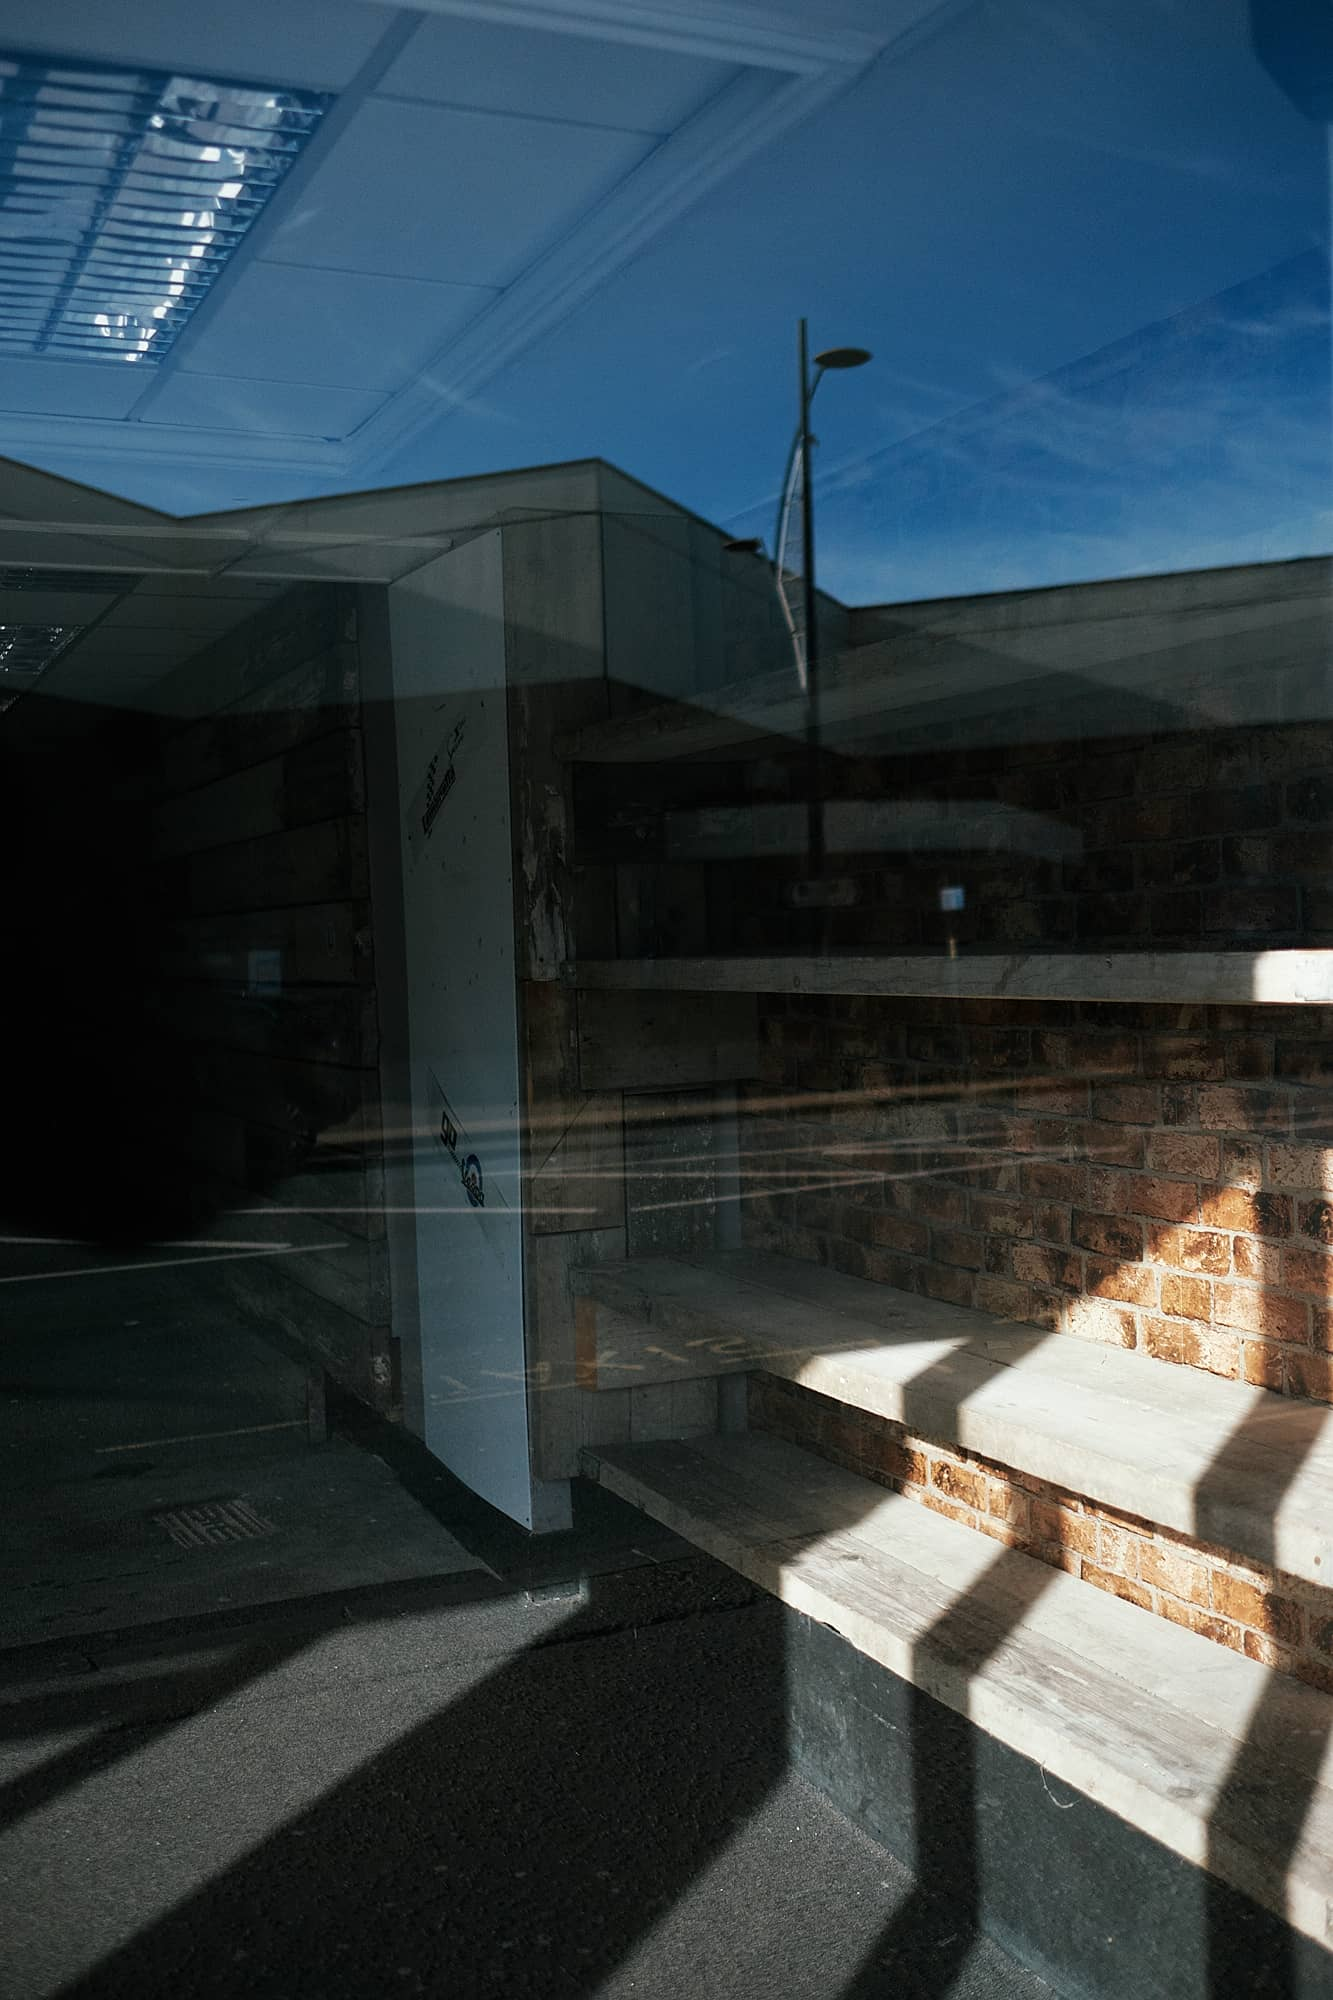 reflections and shadows in an empty shop building